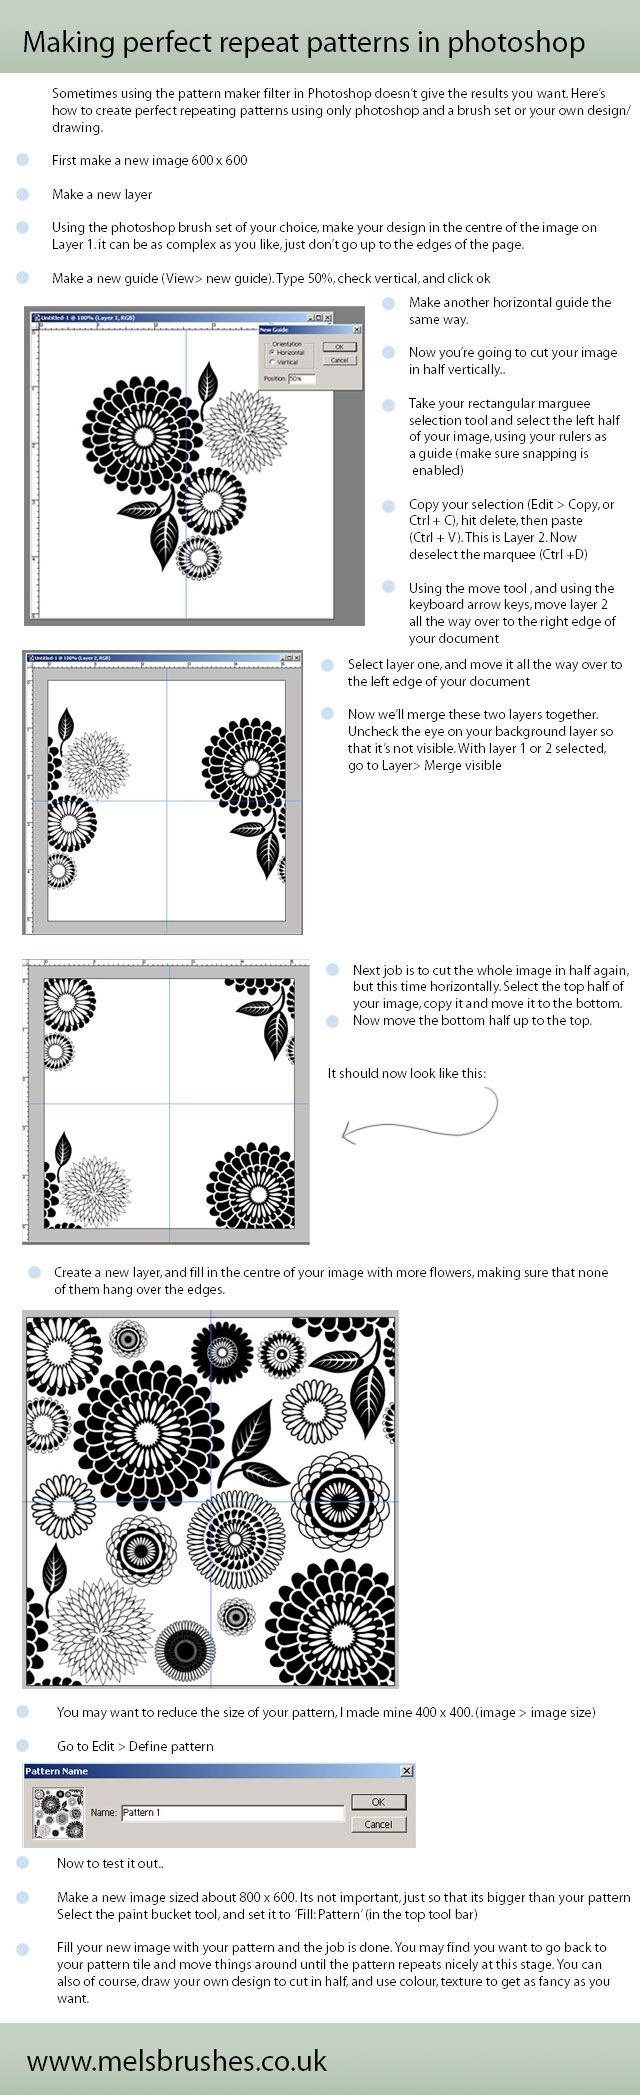 Finally!!!! A tutorial: making repeat patterns in Photoshop